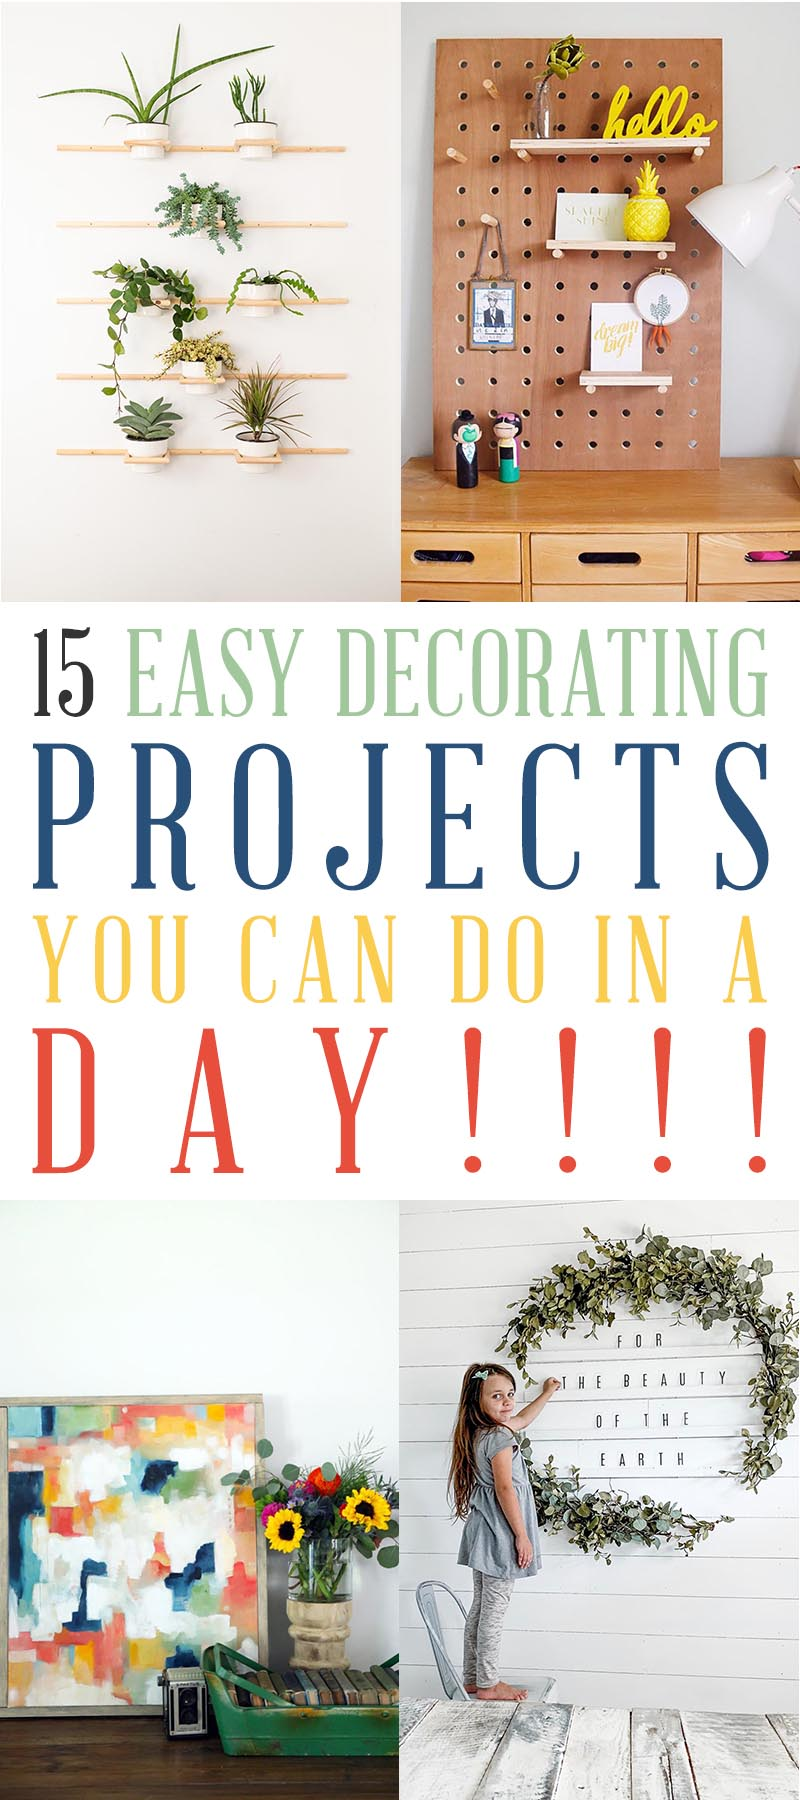 We have 15 Easy Decorating Projects for you and the best thing is, you can do any one of them in a day or less!